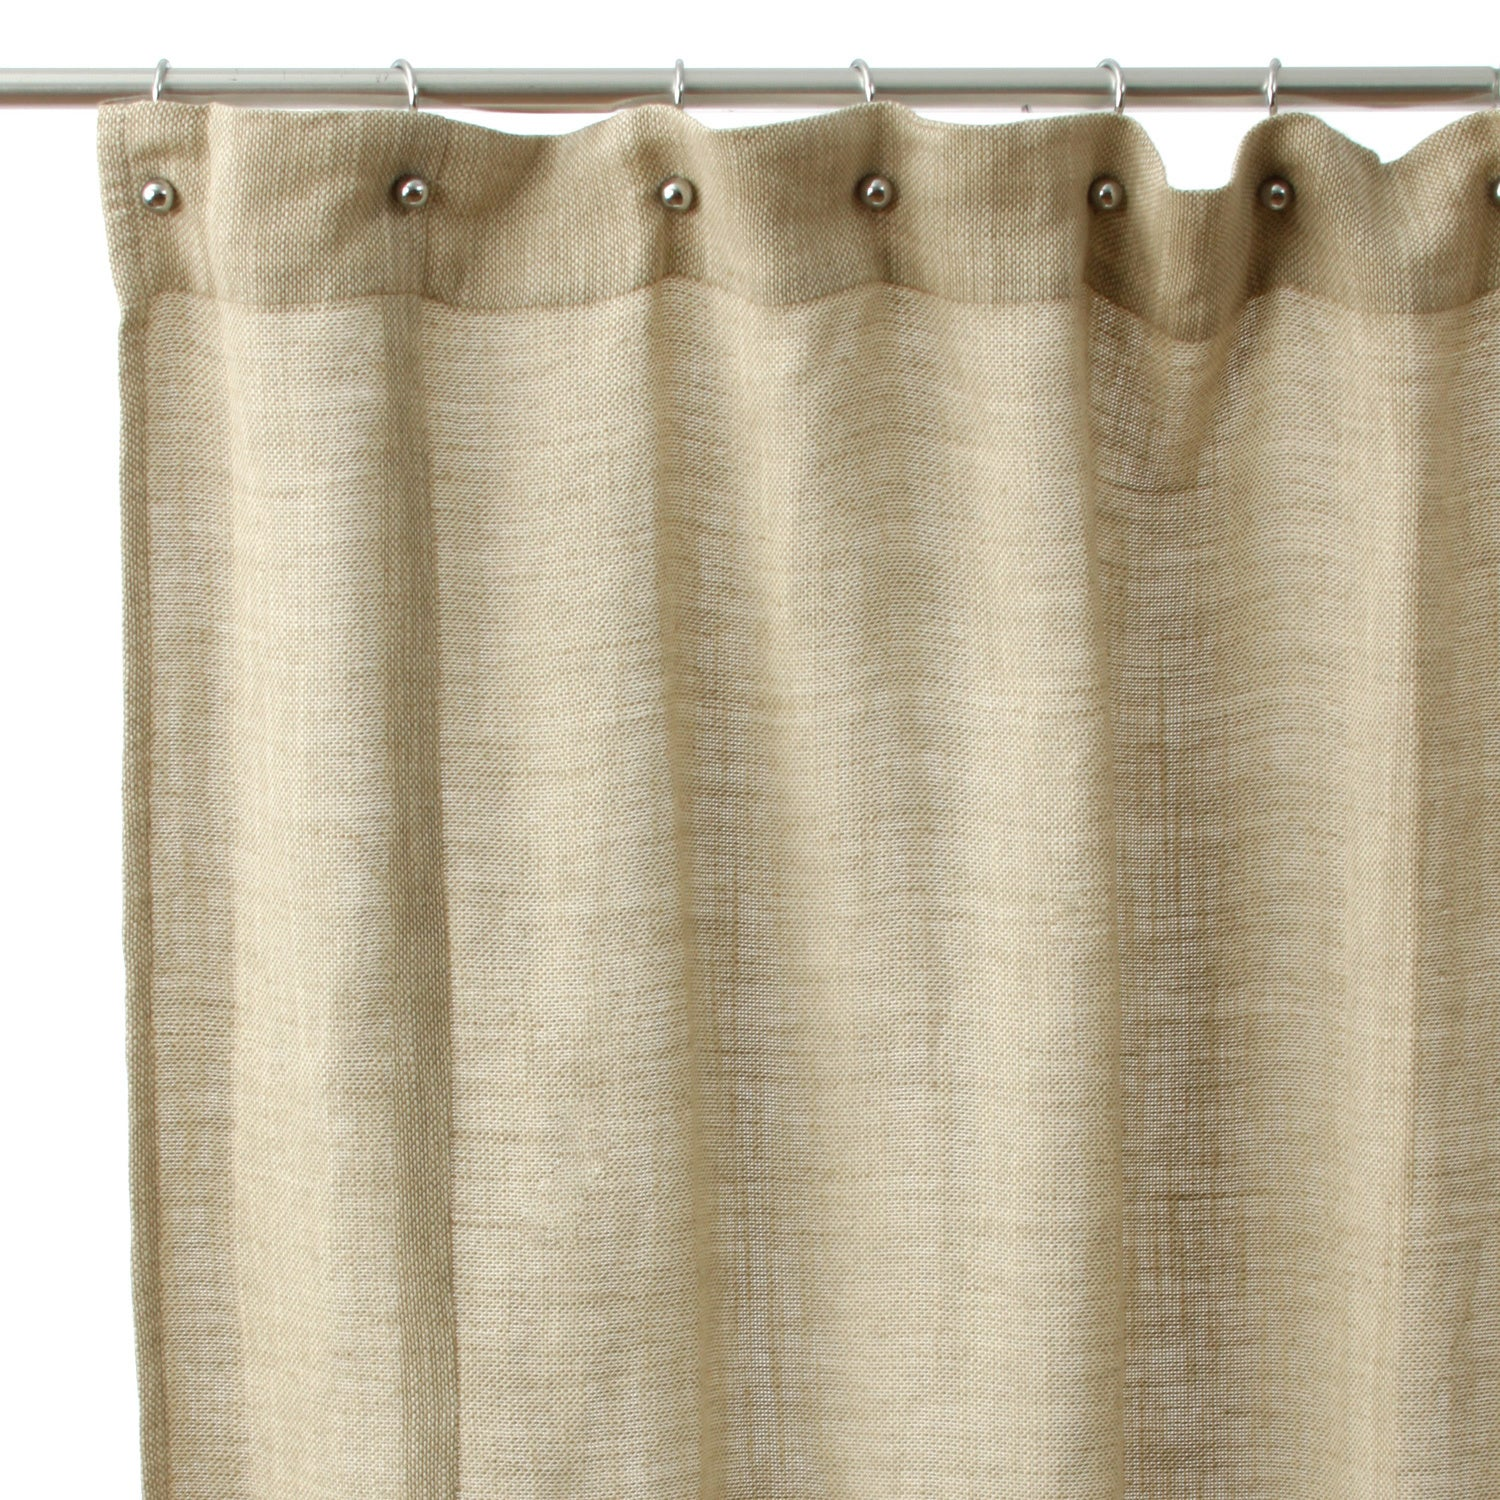 Shop jack rustic cotton shower curtain free shipping today overstock com 9210894